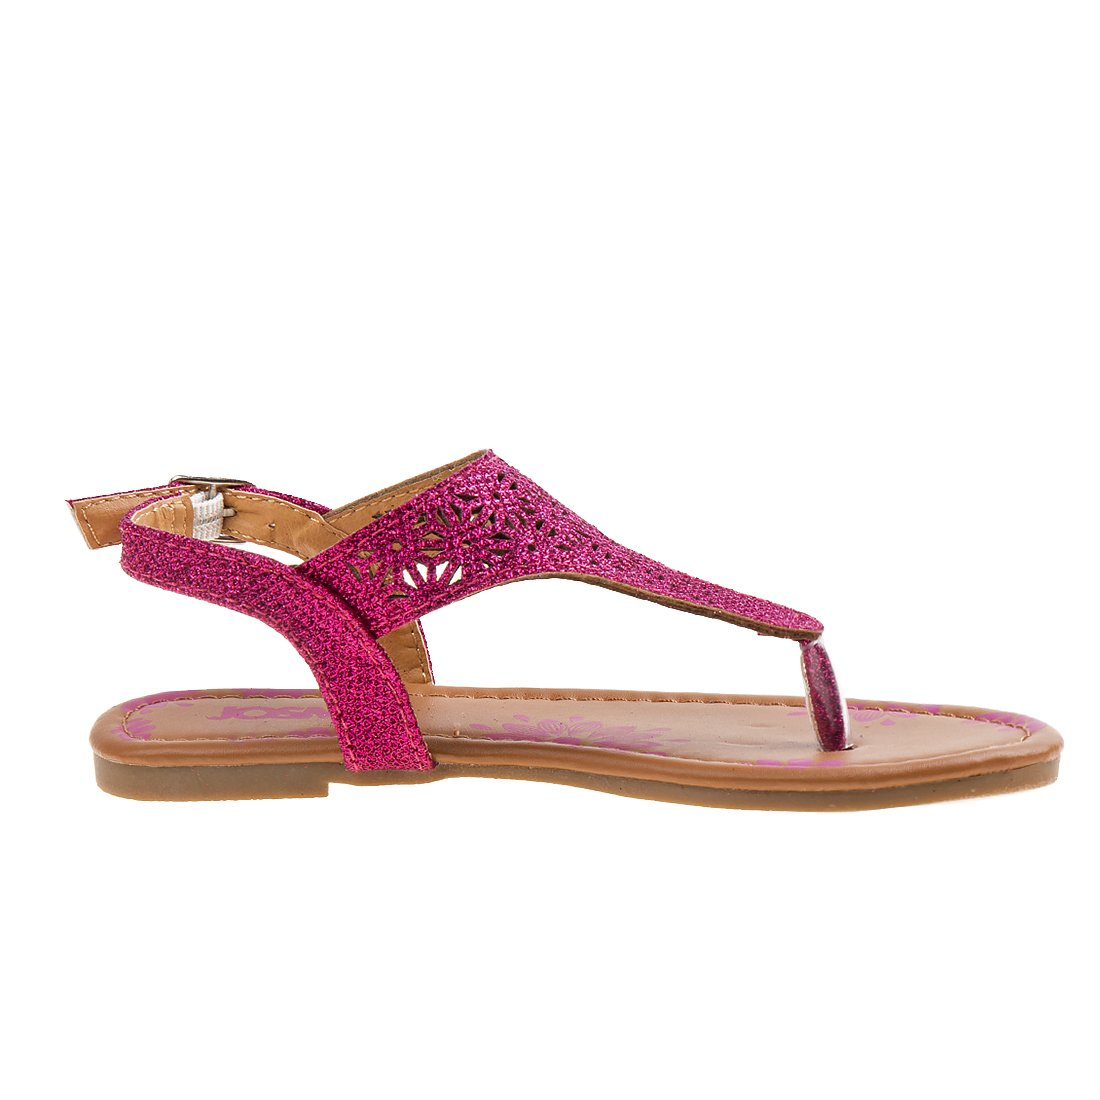 Josmo Girl's T-Strap Glitter Thong Sandals, Pink, 3 M US Big Kid' by Josmo (Image #4)